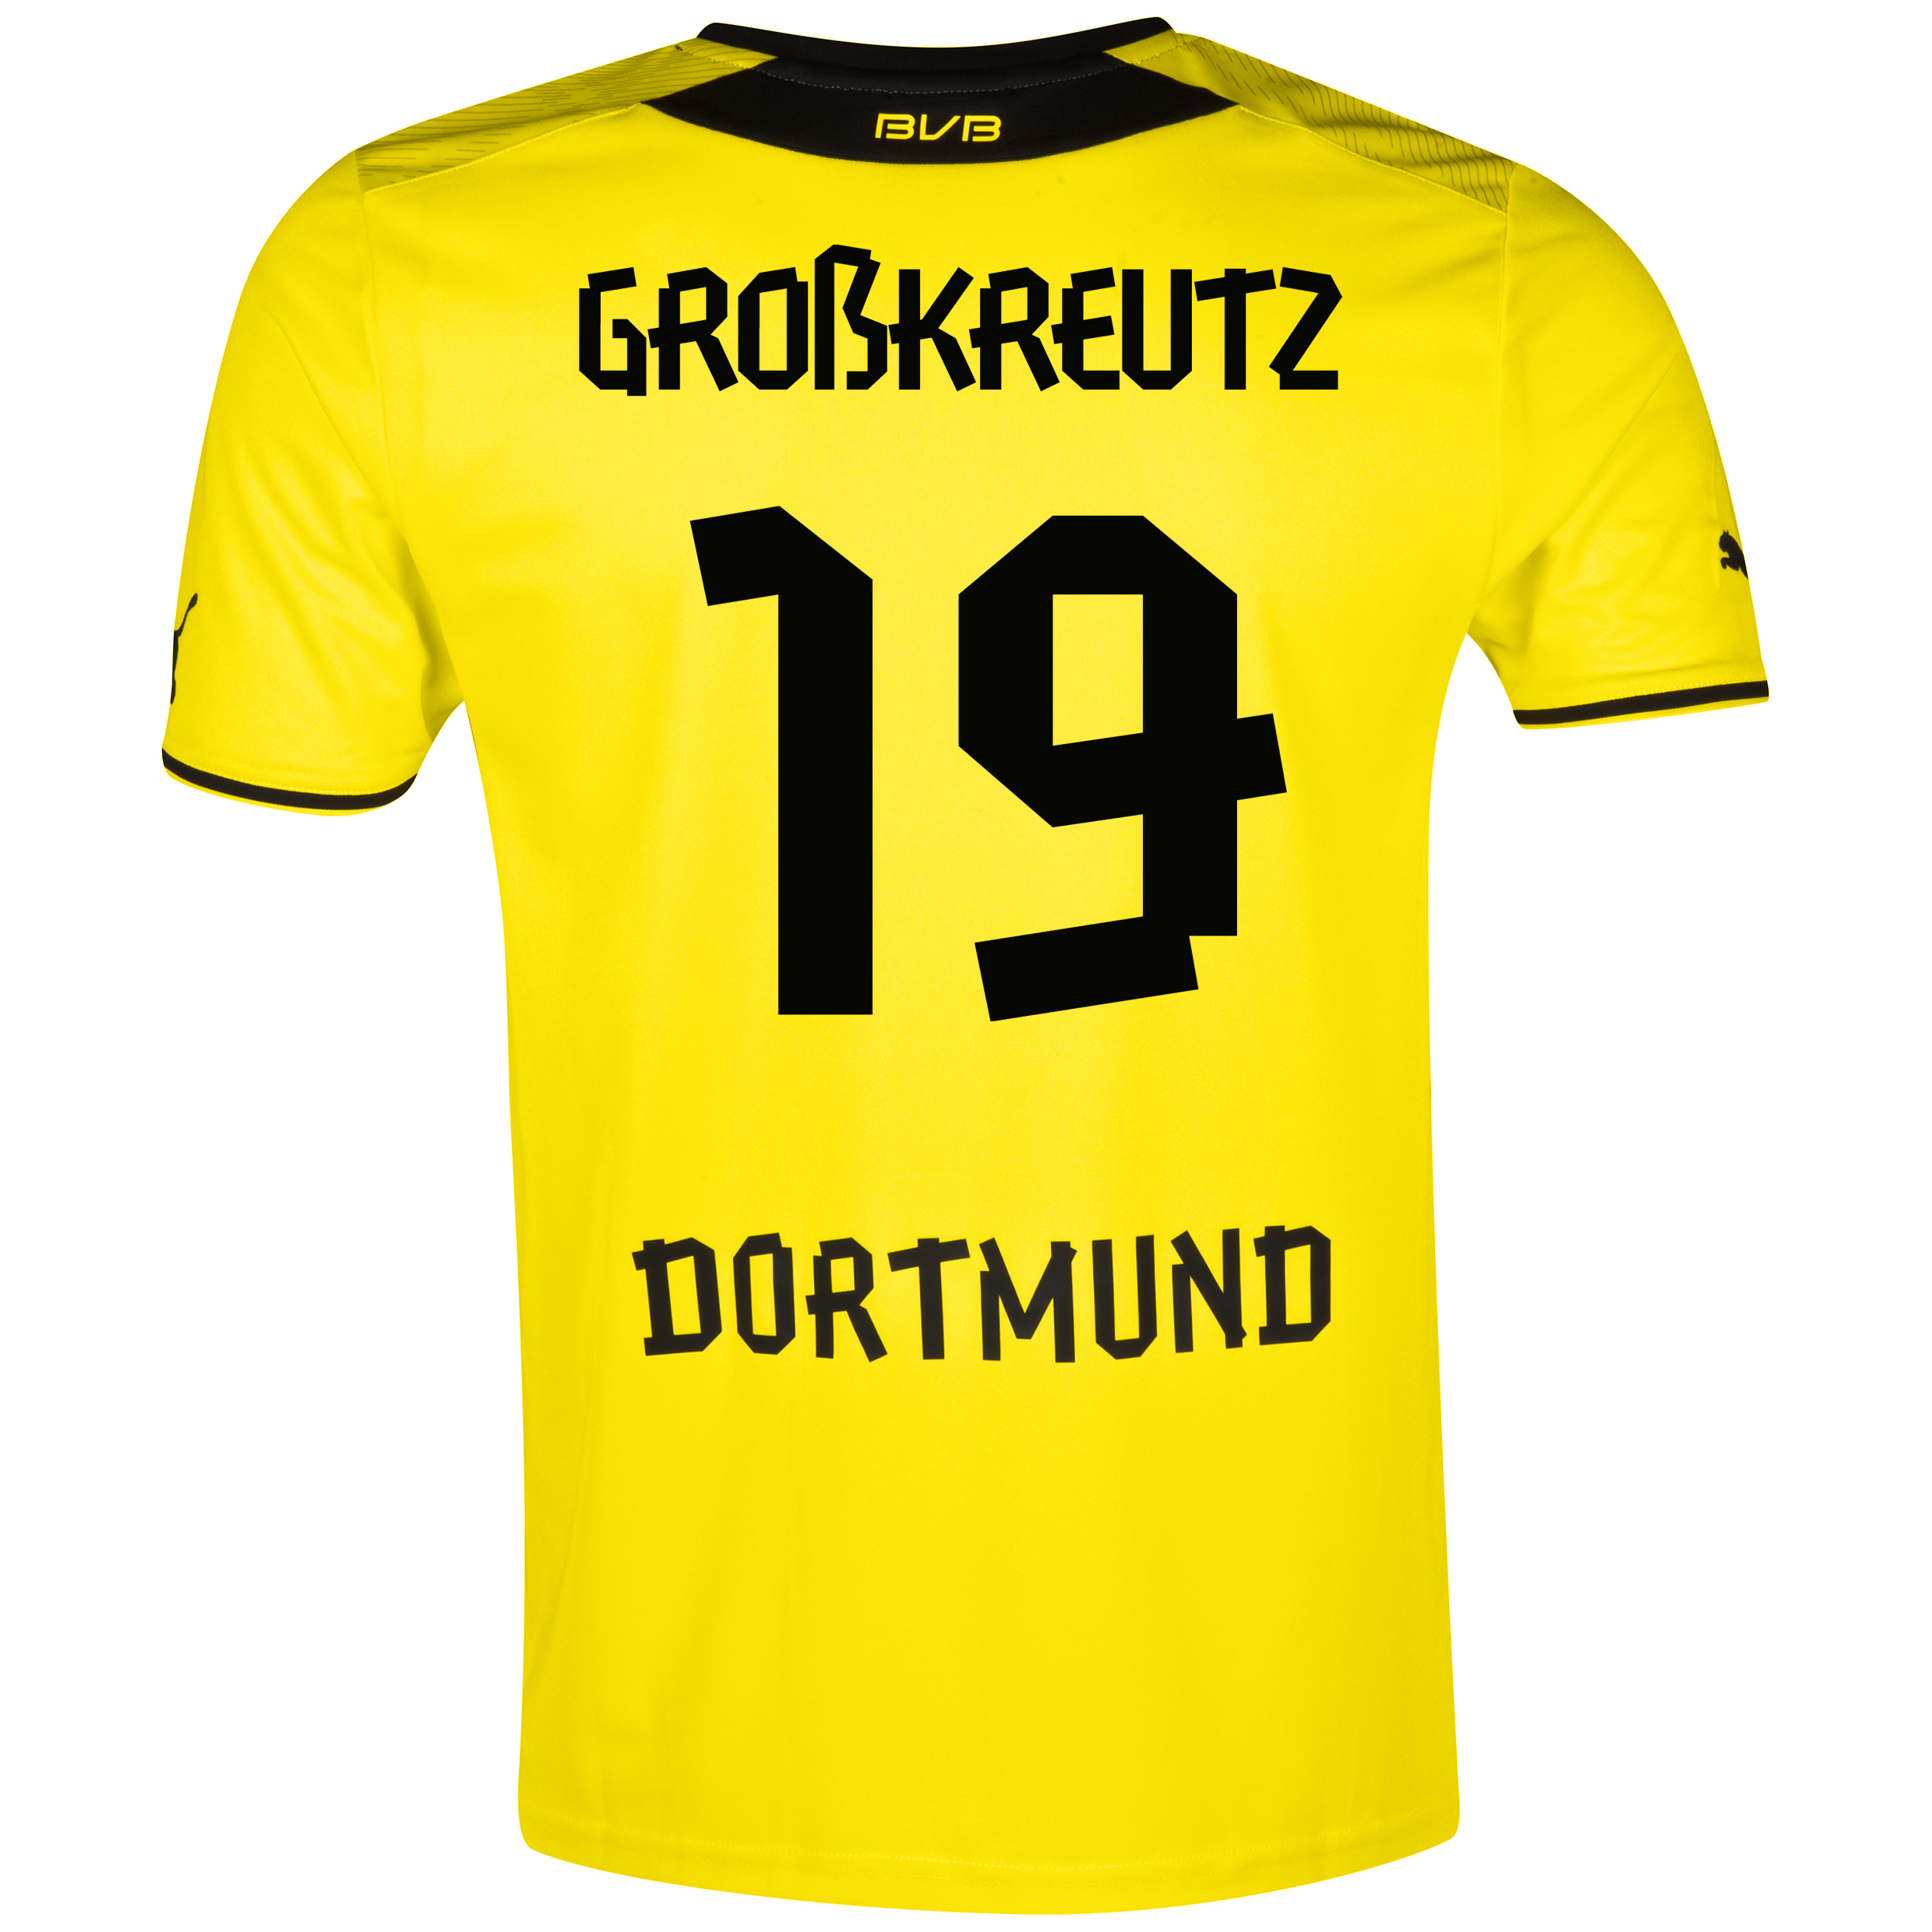 BVB Home Shirt 2013/14 with Grosskreutz 19 printing